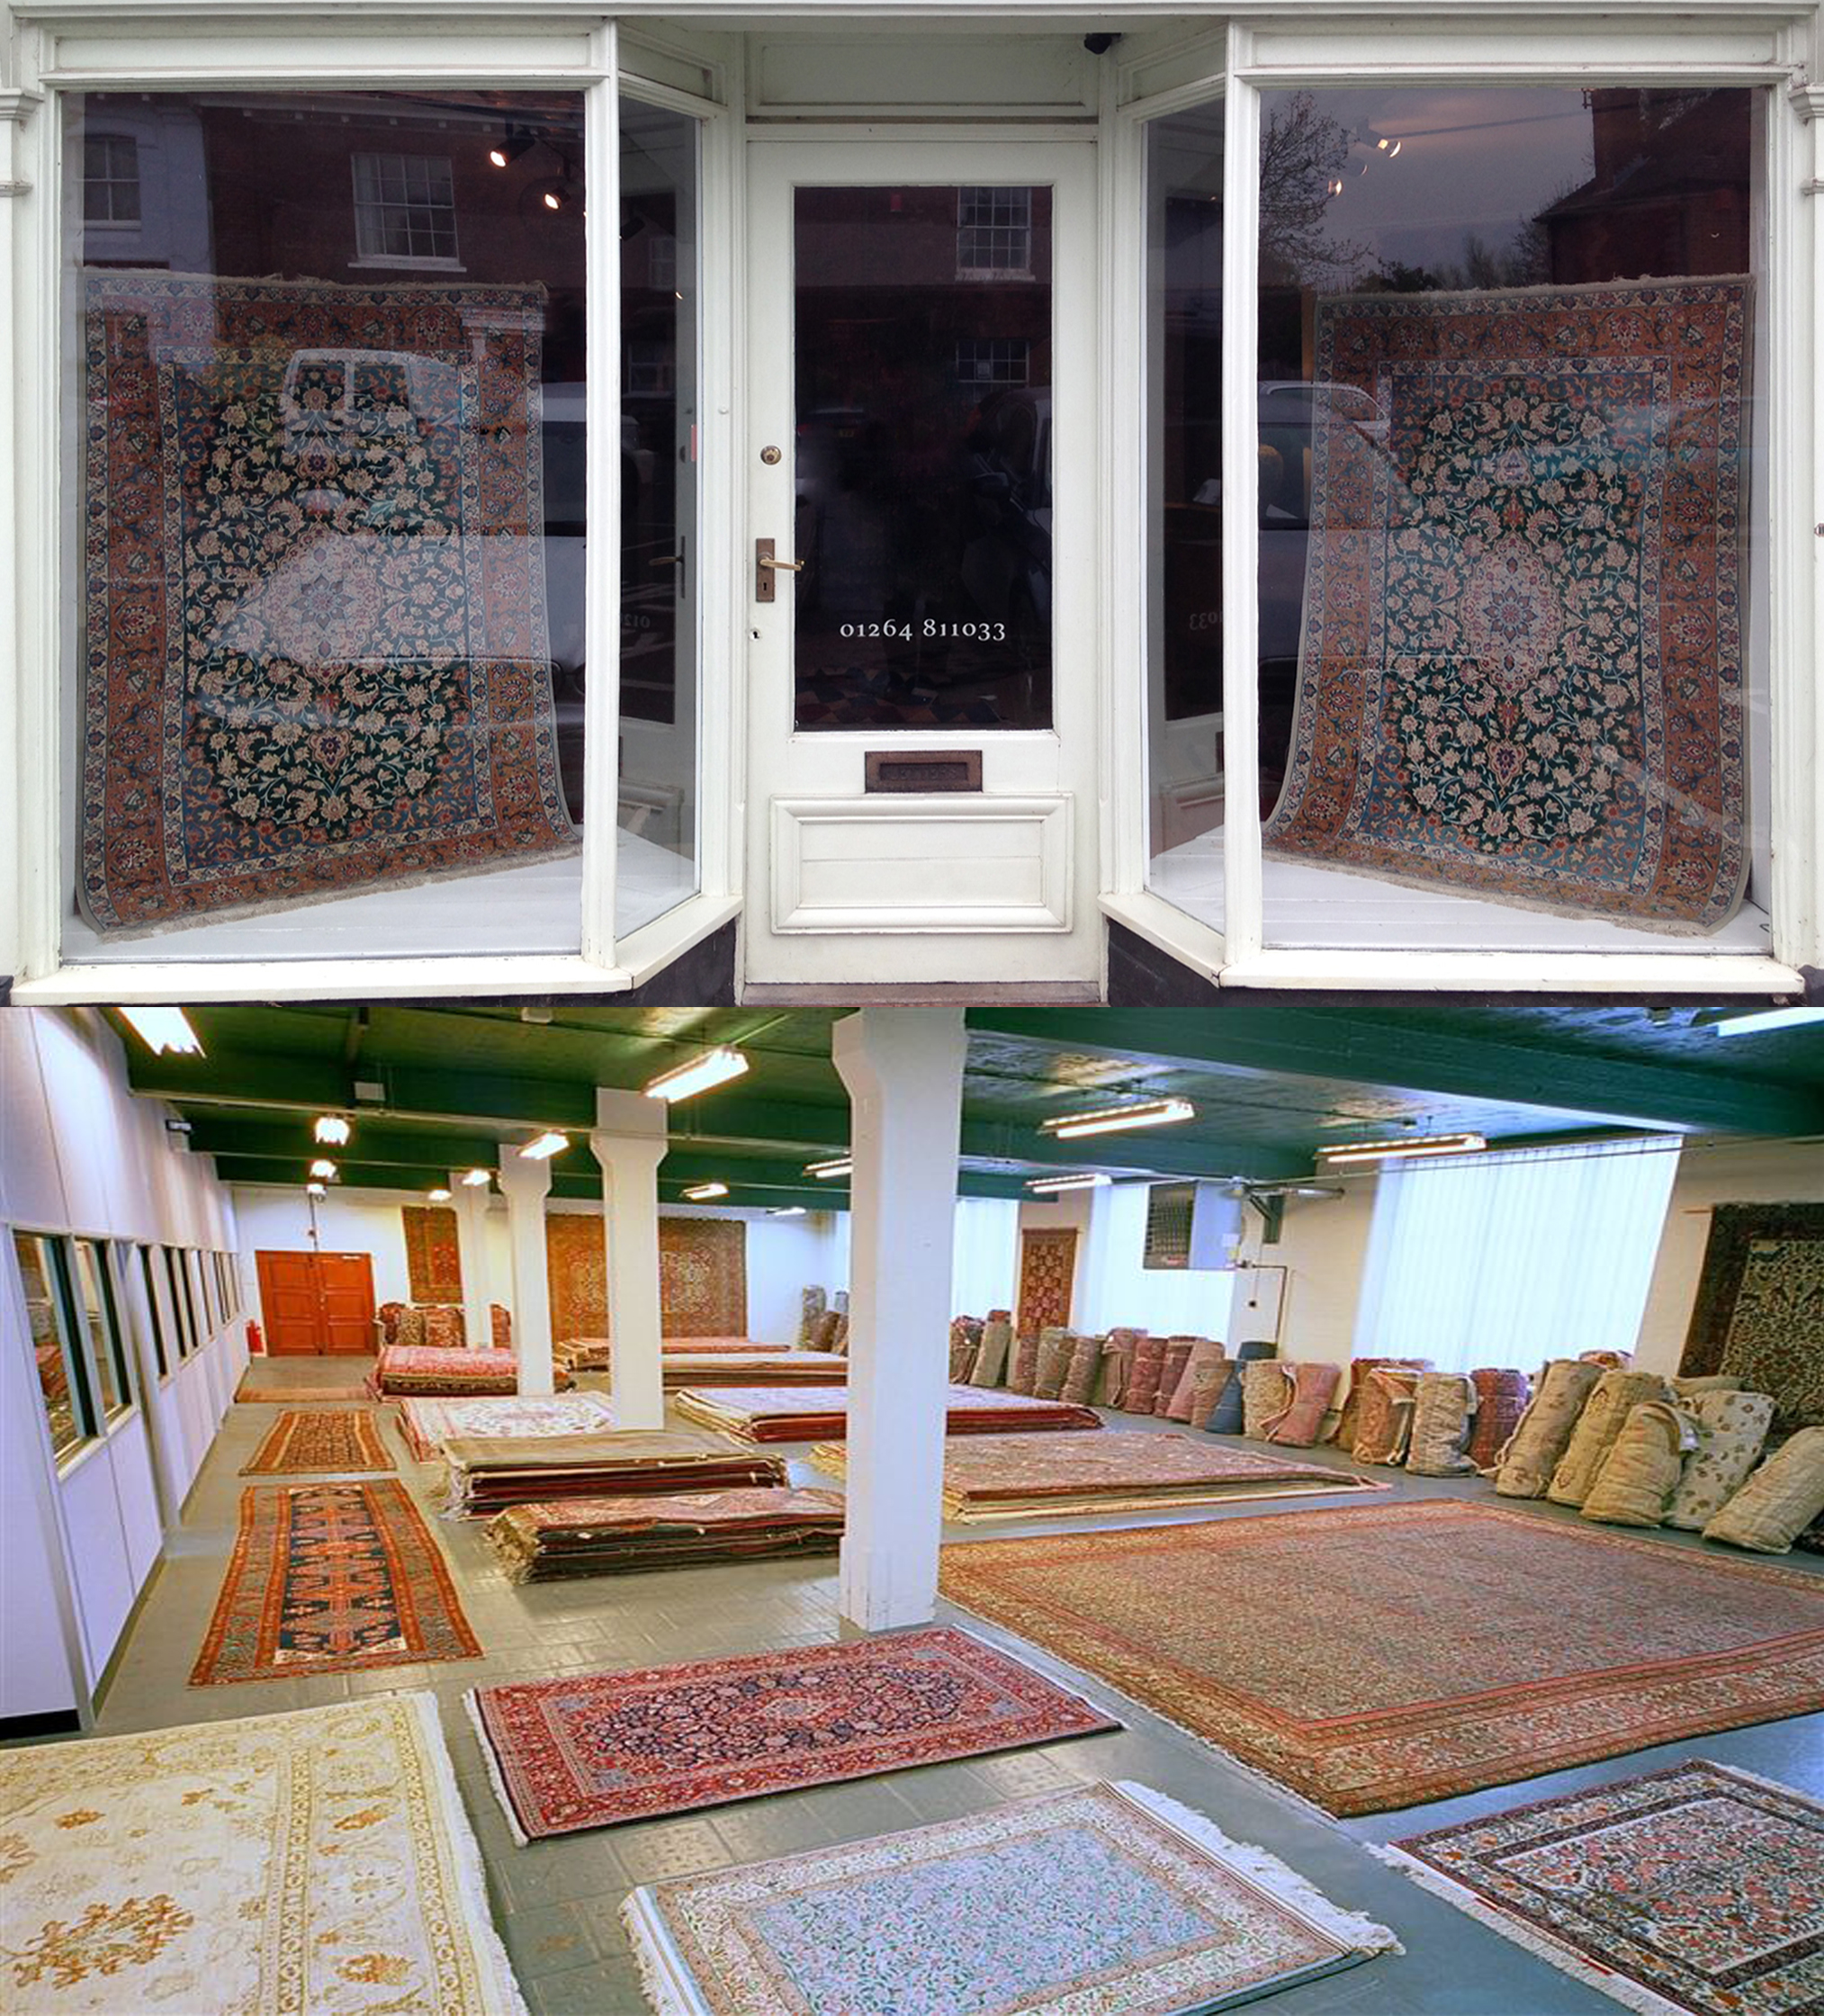 Visit our Hampshire stores or London warehouse for expert advice and guidance on our large selection of hand-knotted Persian rugs, carpets, runners & kilims. We offer a range of services including home viewings, rug repair and cleaning, rug valuations, bespoke rug weaving and rug hire.